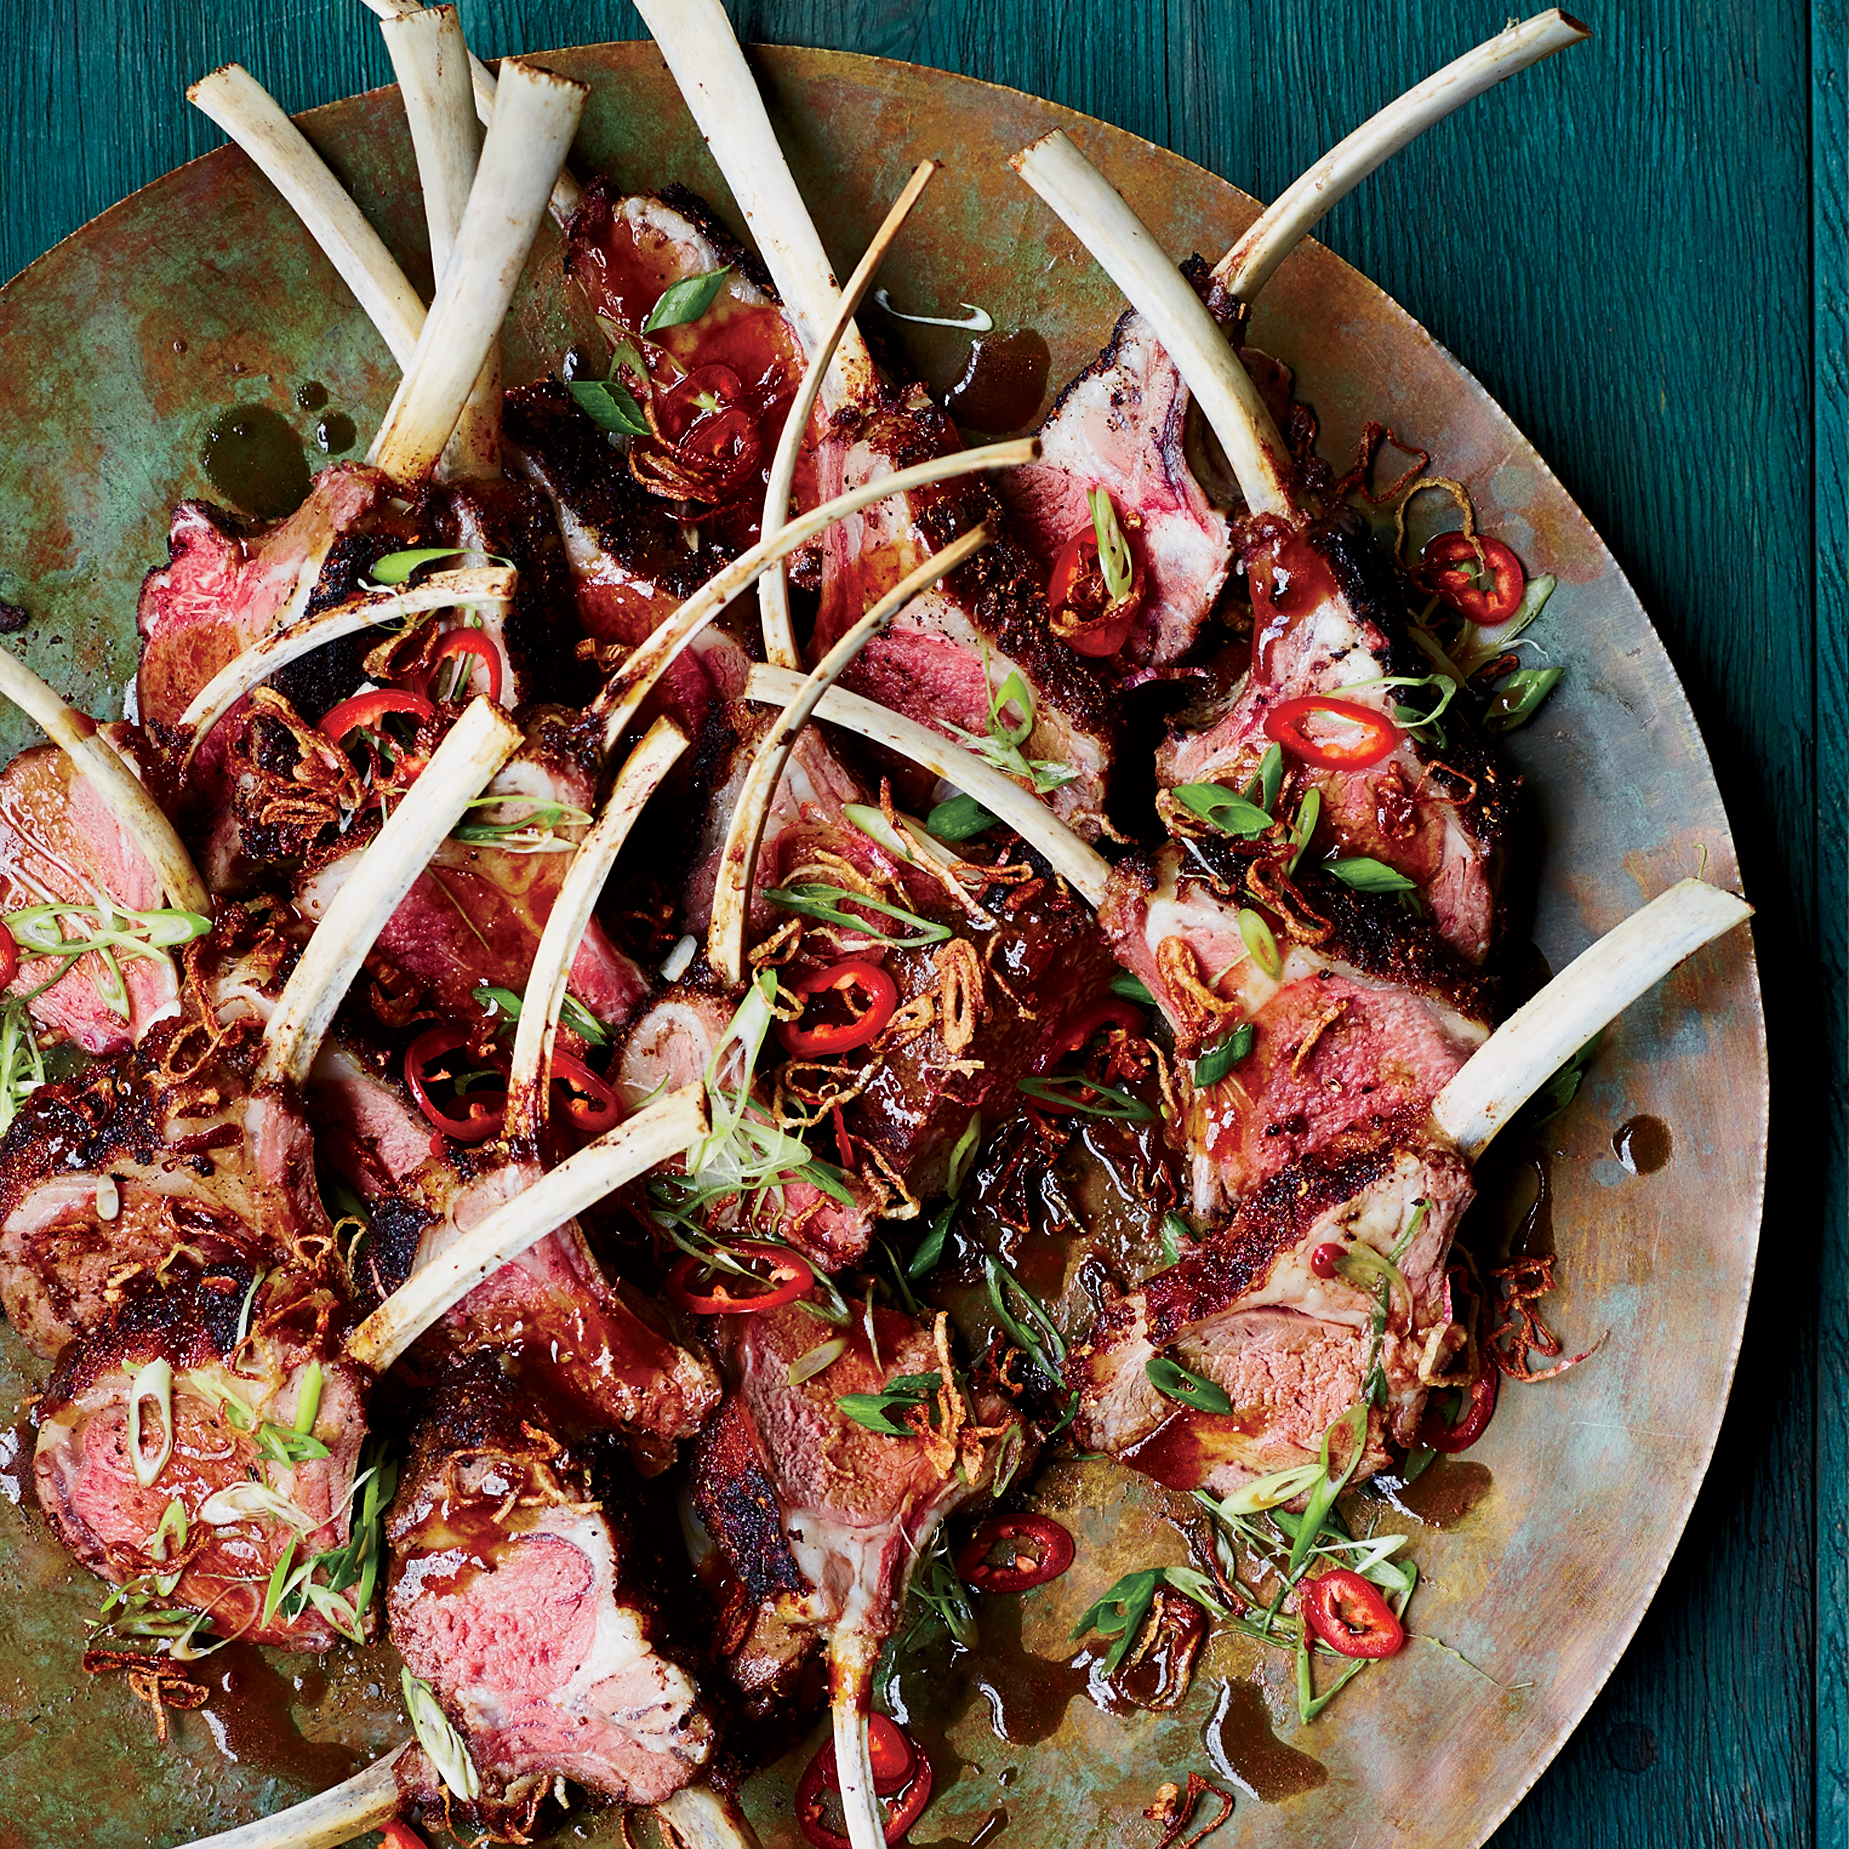 original-201311-r-sichuan-rack-of-lamb-with-cumin-chile-peppers.jpg